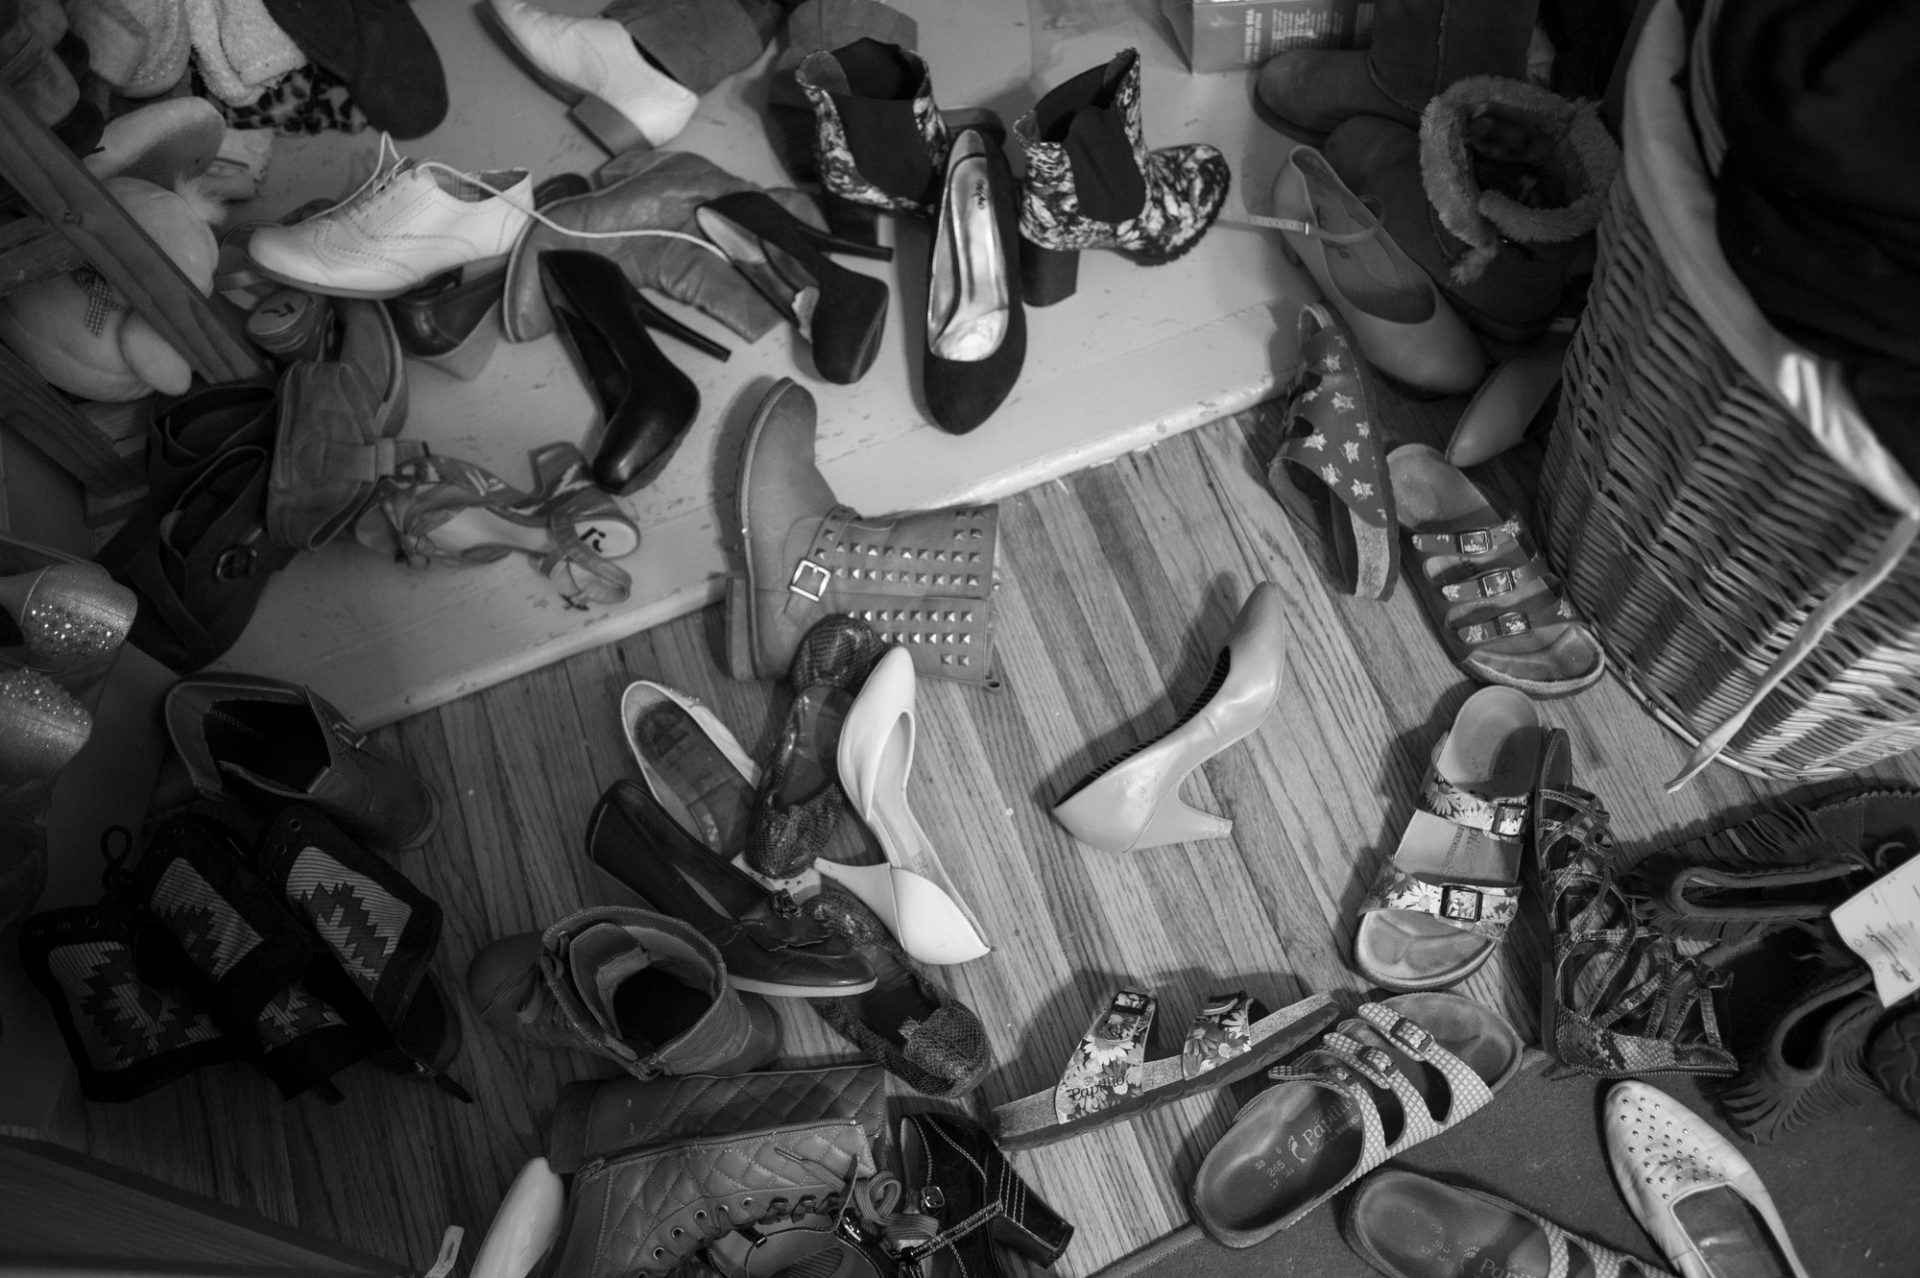 Photo: Shoes on the floor of a teenage girl's bedroom.